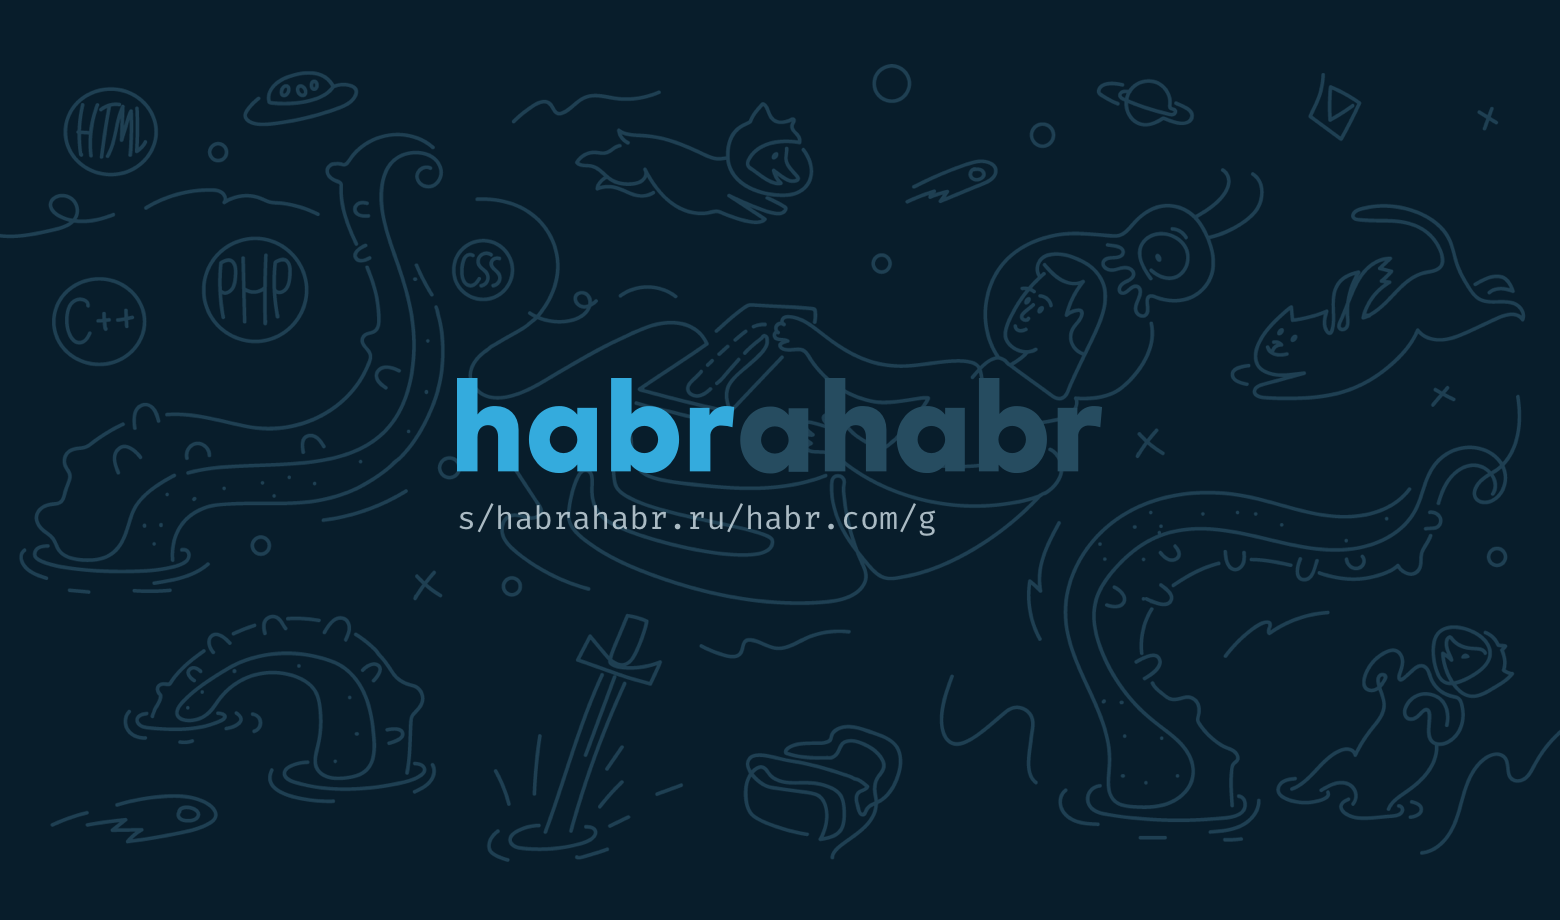 Received the Habrahabr award 39